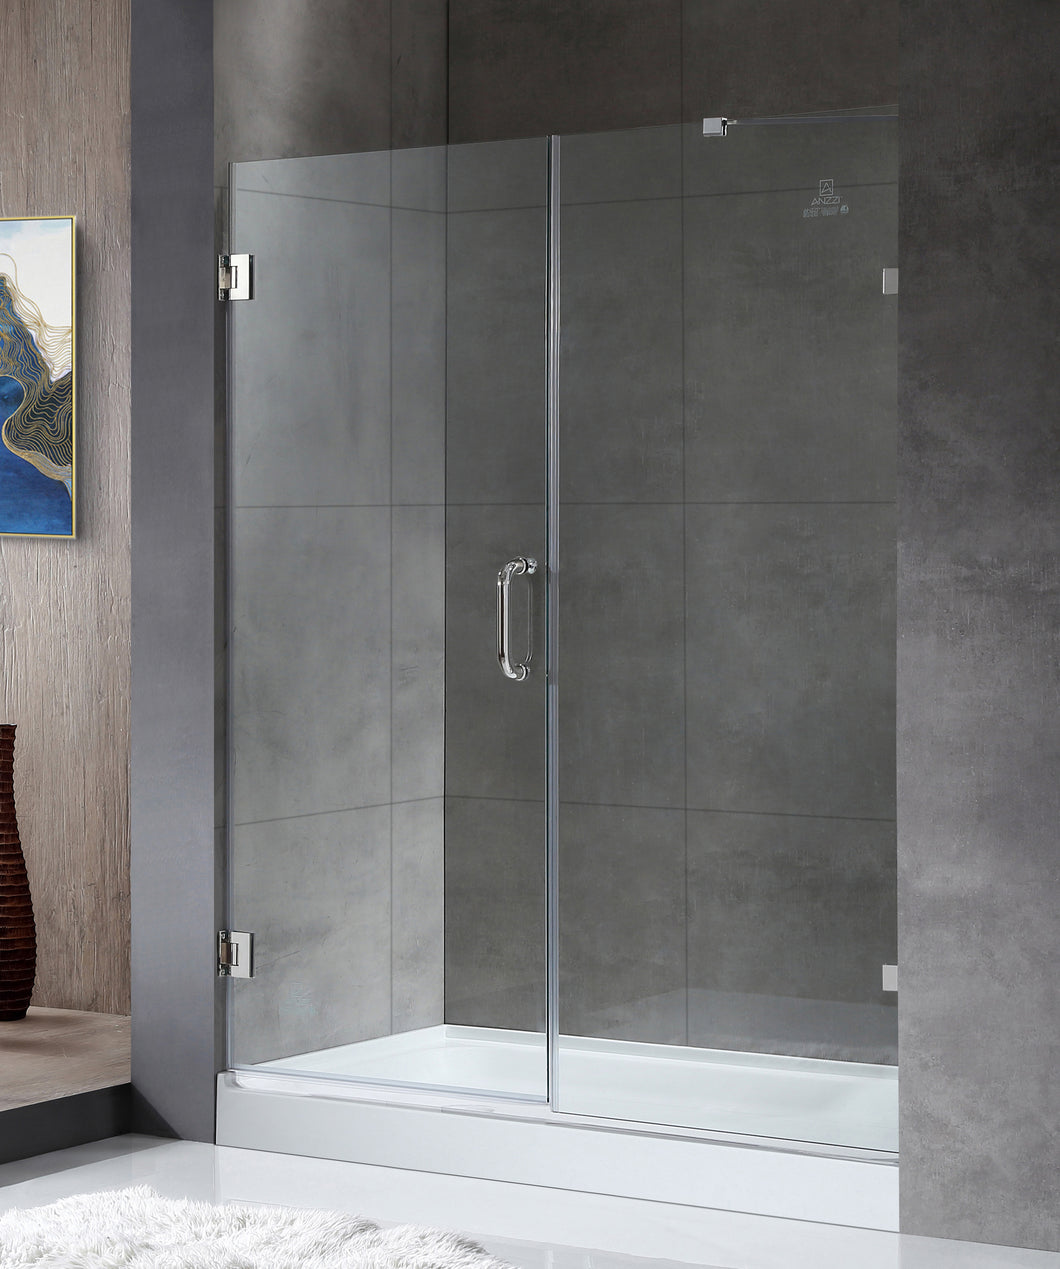 Consort Series 60 in. by 72 in. Frameless Hinged Alcove Shower Door in Polished Chrome with Handle